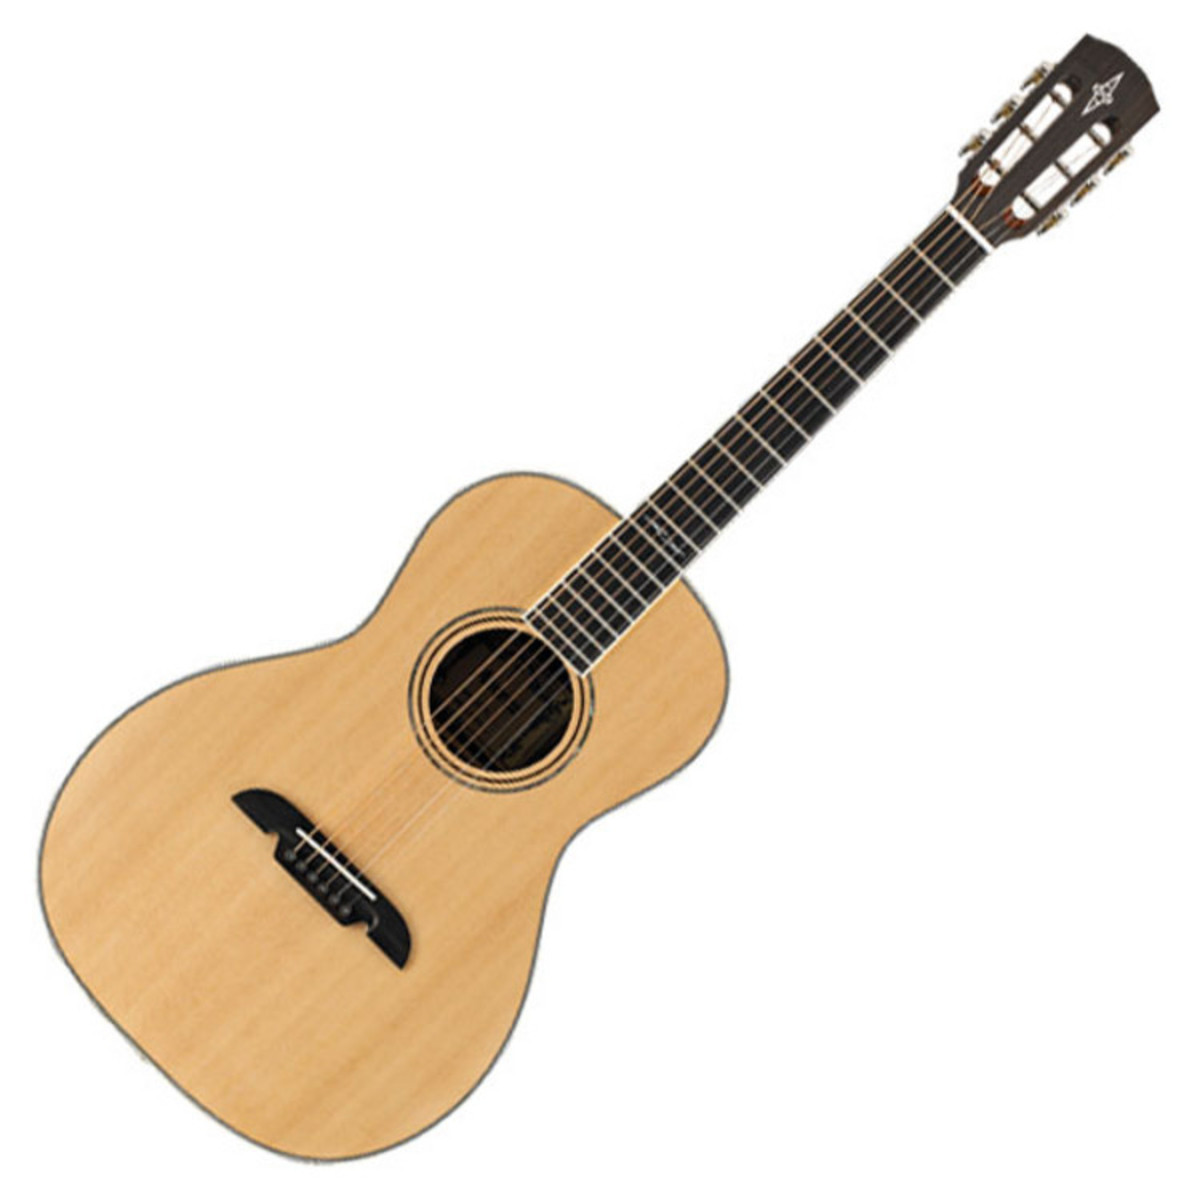 Parlor Acoustic Guitar : alvarez artist series ap70 parlor acoustic natural at ~ Russianpoet.info Haus und Dekorationen